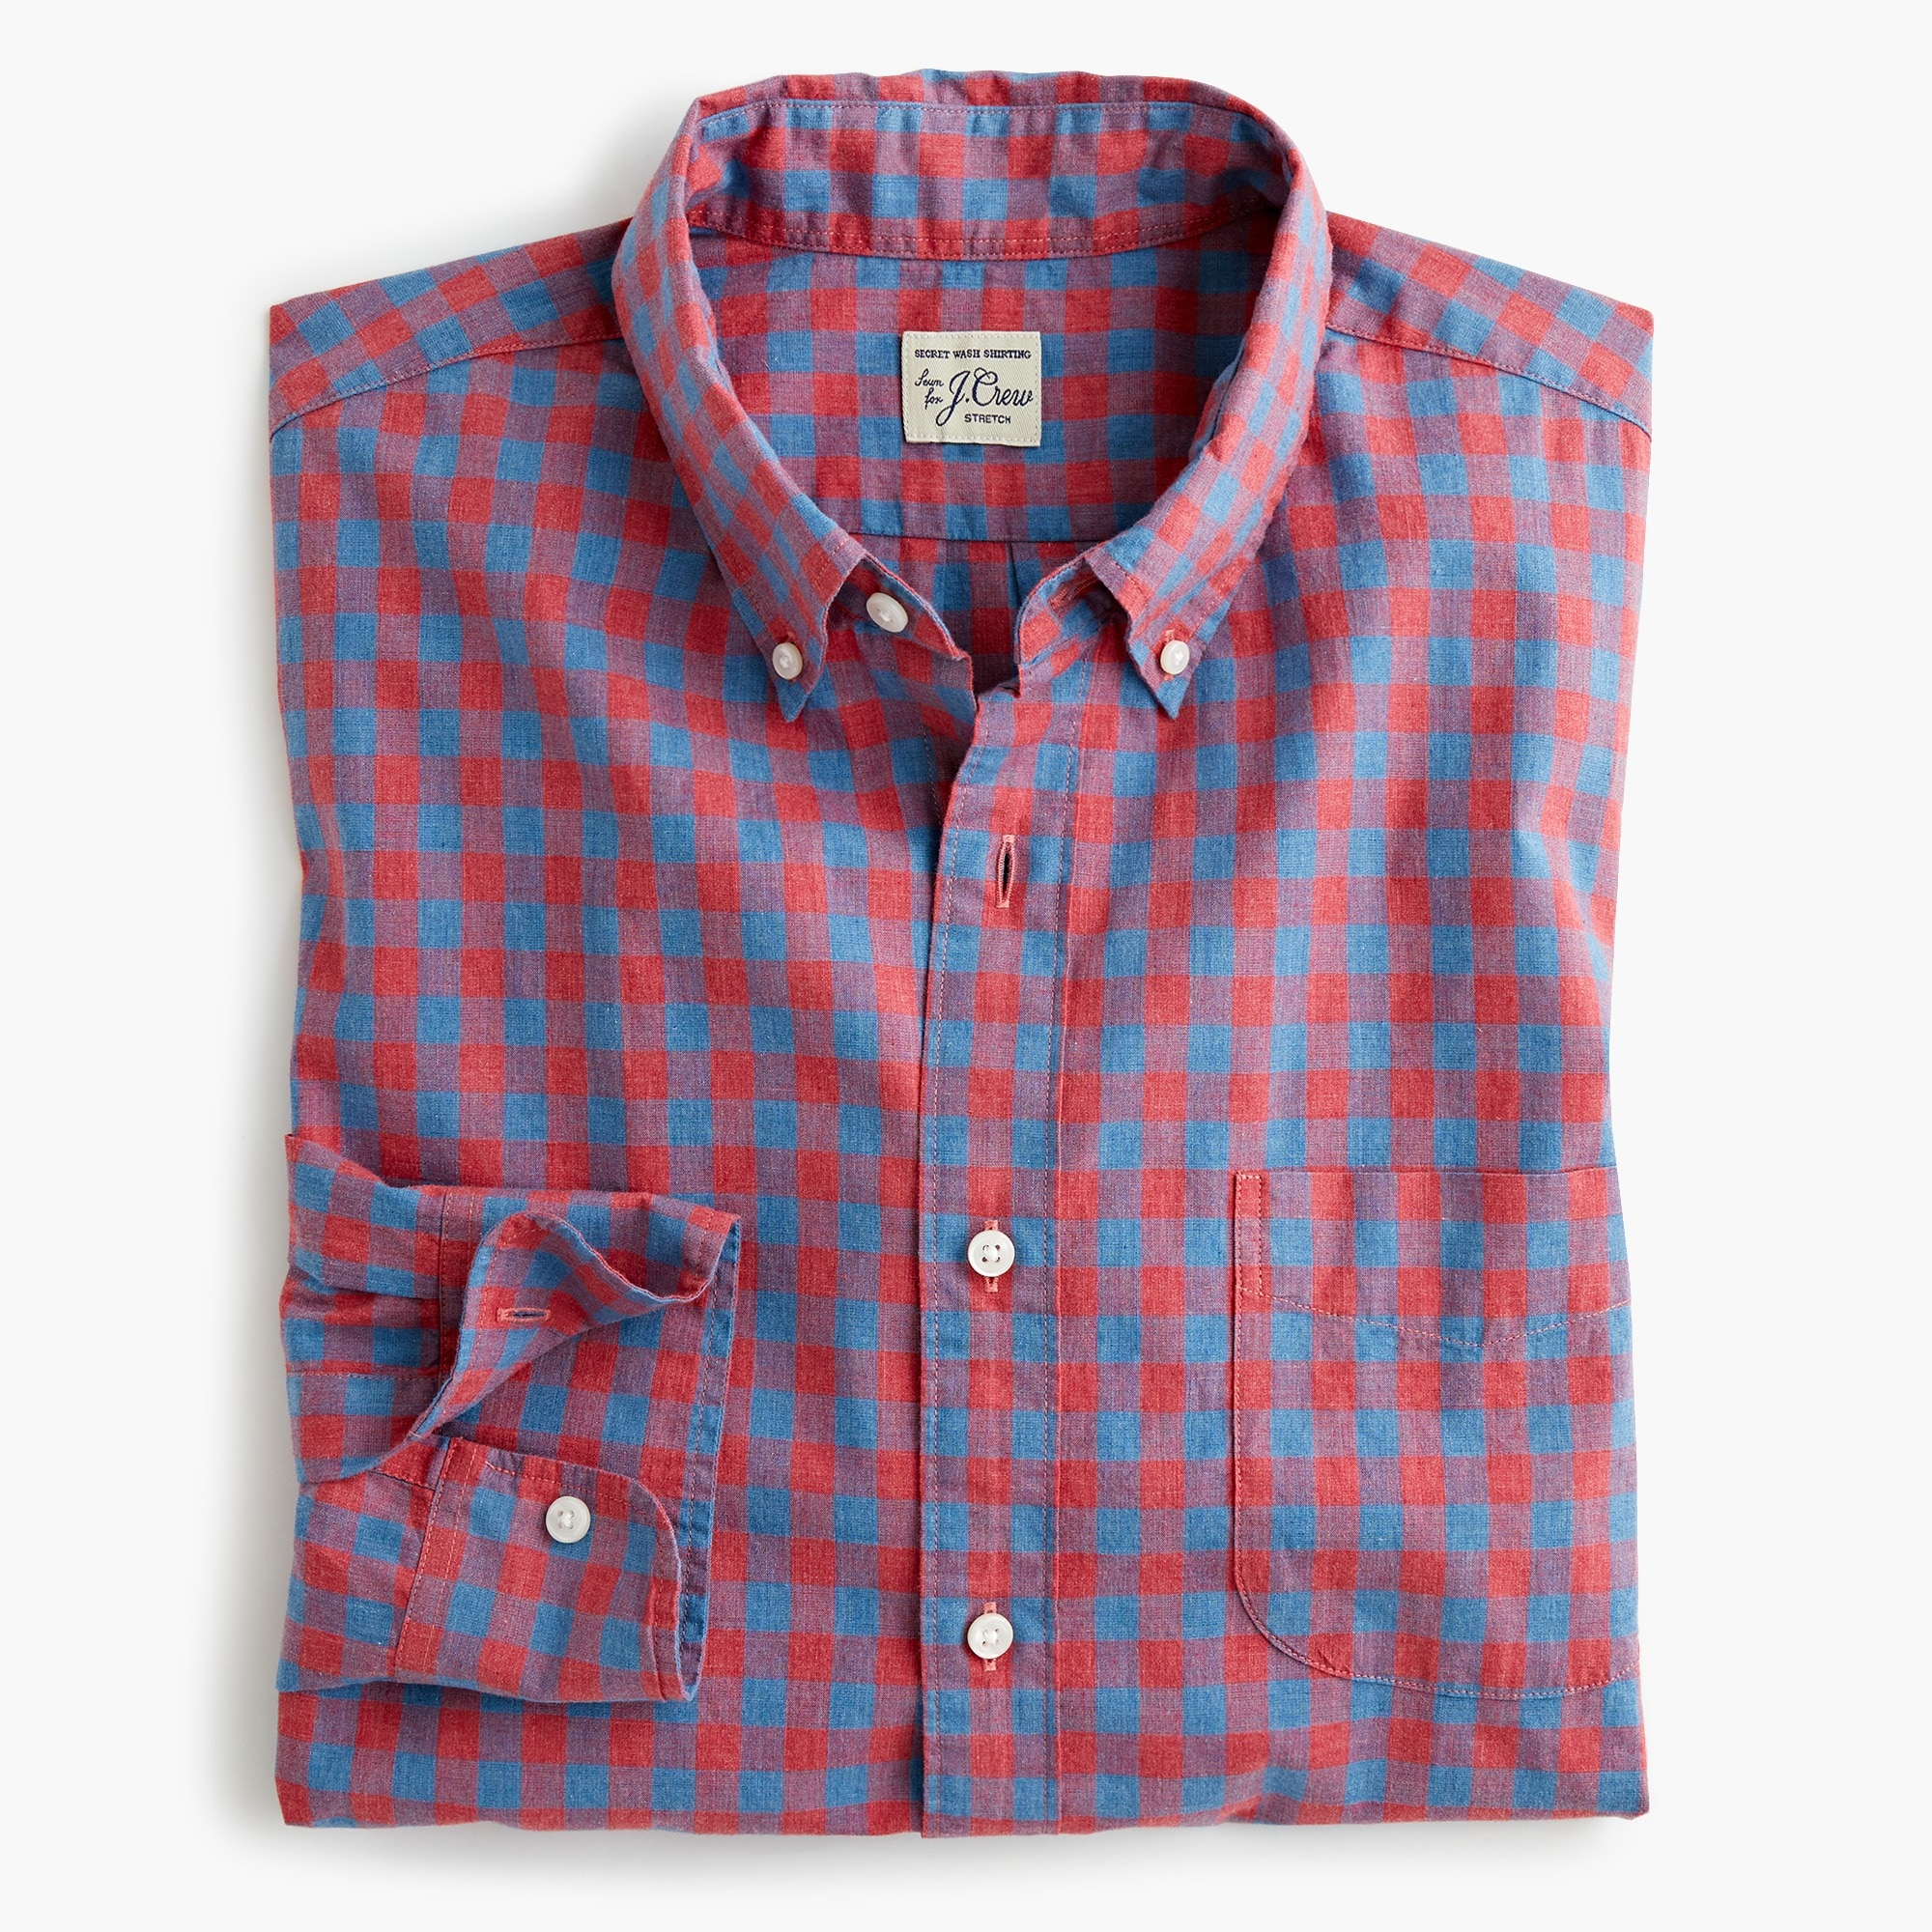 mens Stretch Secret Wash shirt in heather poplin gingham